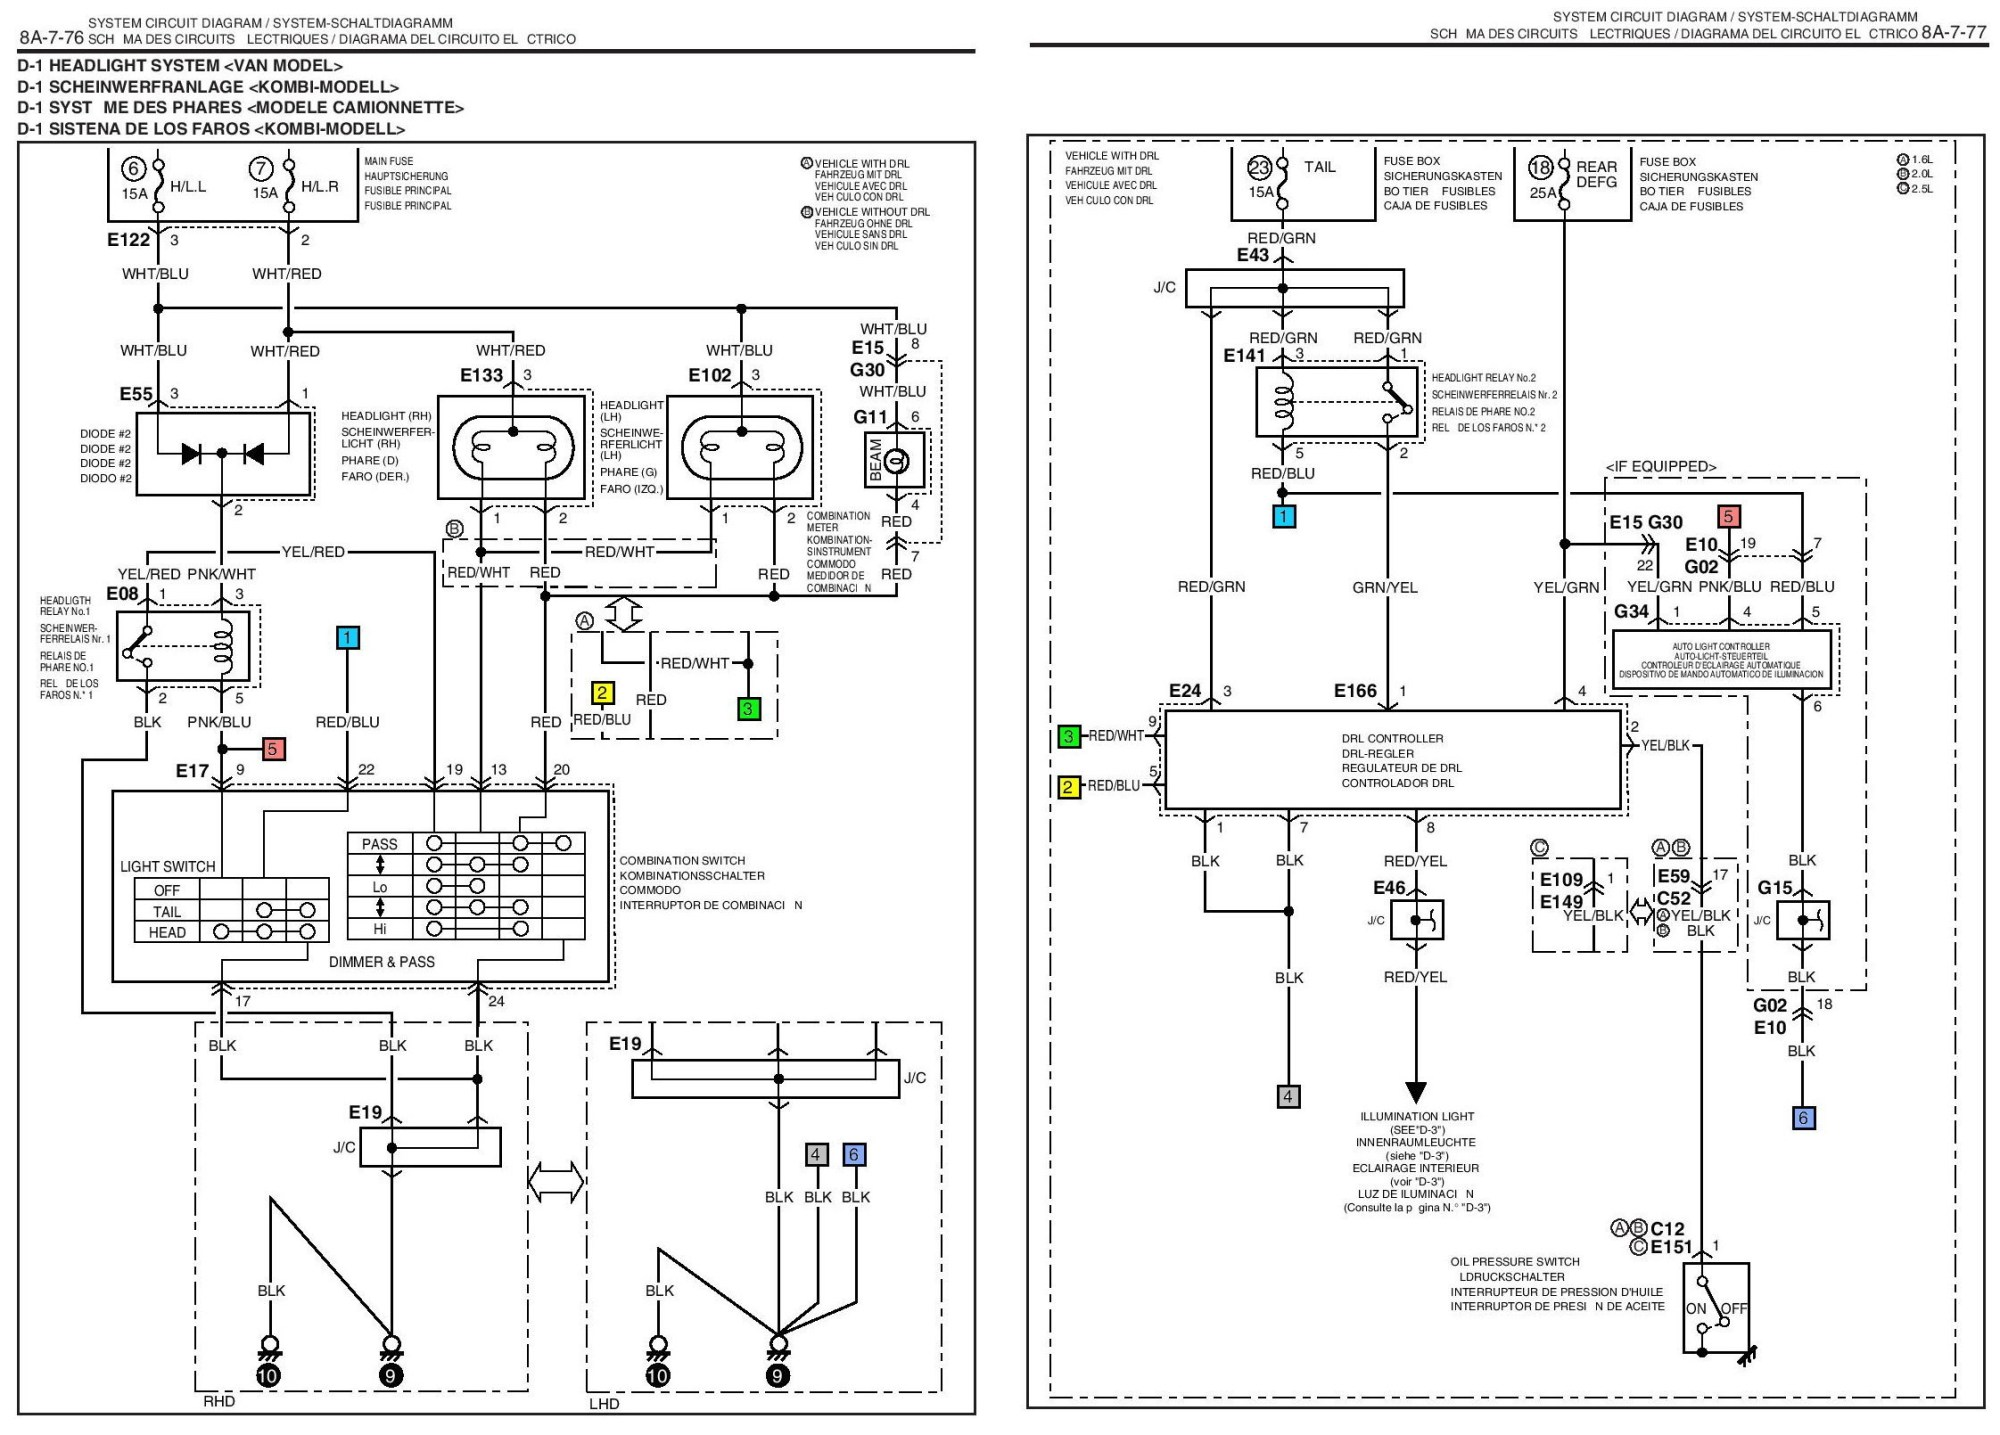 hight resolution of suzuki xl7 electrical diagram wiring diagrams rh casamario de 2002 suzuki xl7 wiring diagram suzuki xl7 stereo wiring diagram